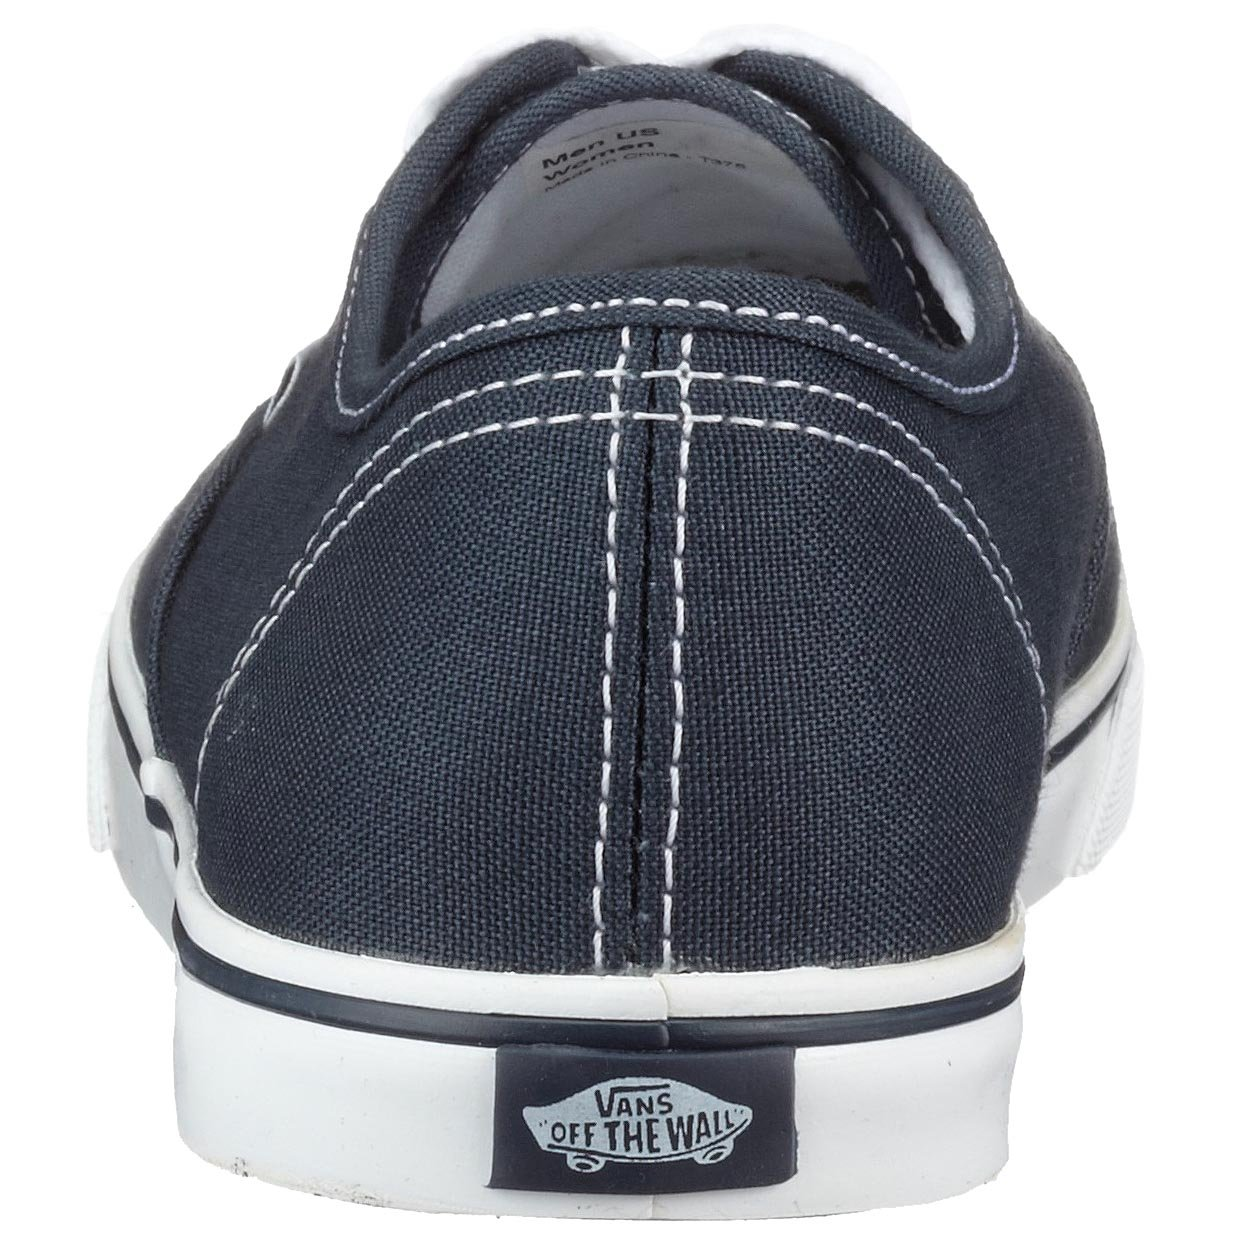 Vans B01MR11RDE Authentic B01MR11RDE Vans 6.5 B(M) US|Navy/True White 54324f